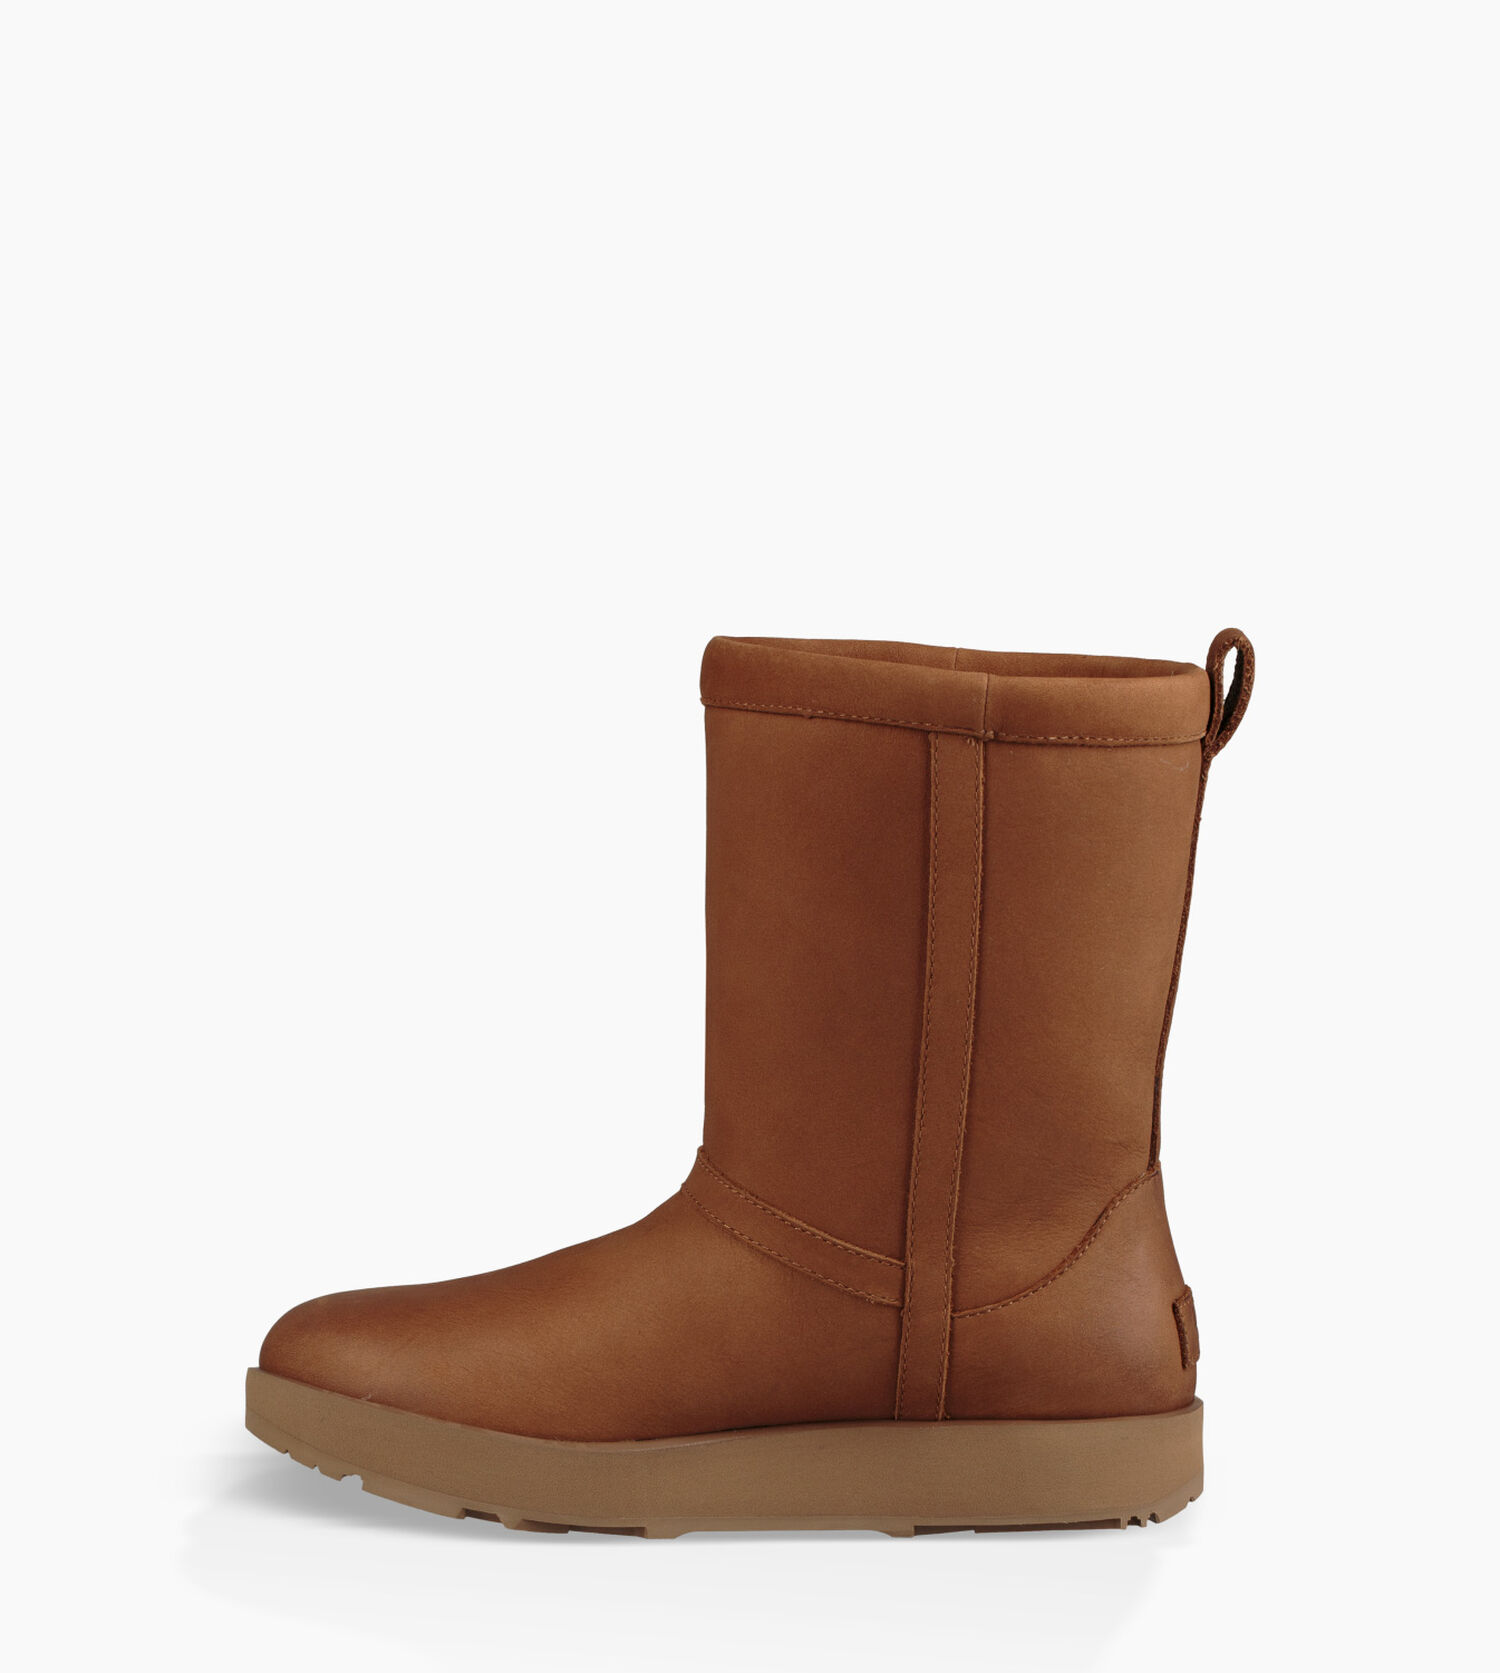 99caf445d83 Women's Share this product Classic Short Leather Waterproof Boot